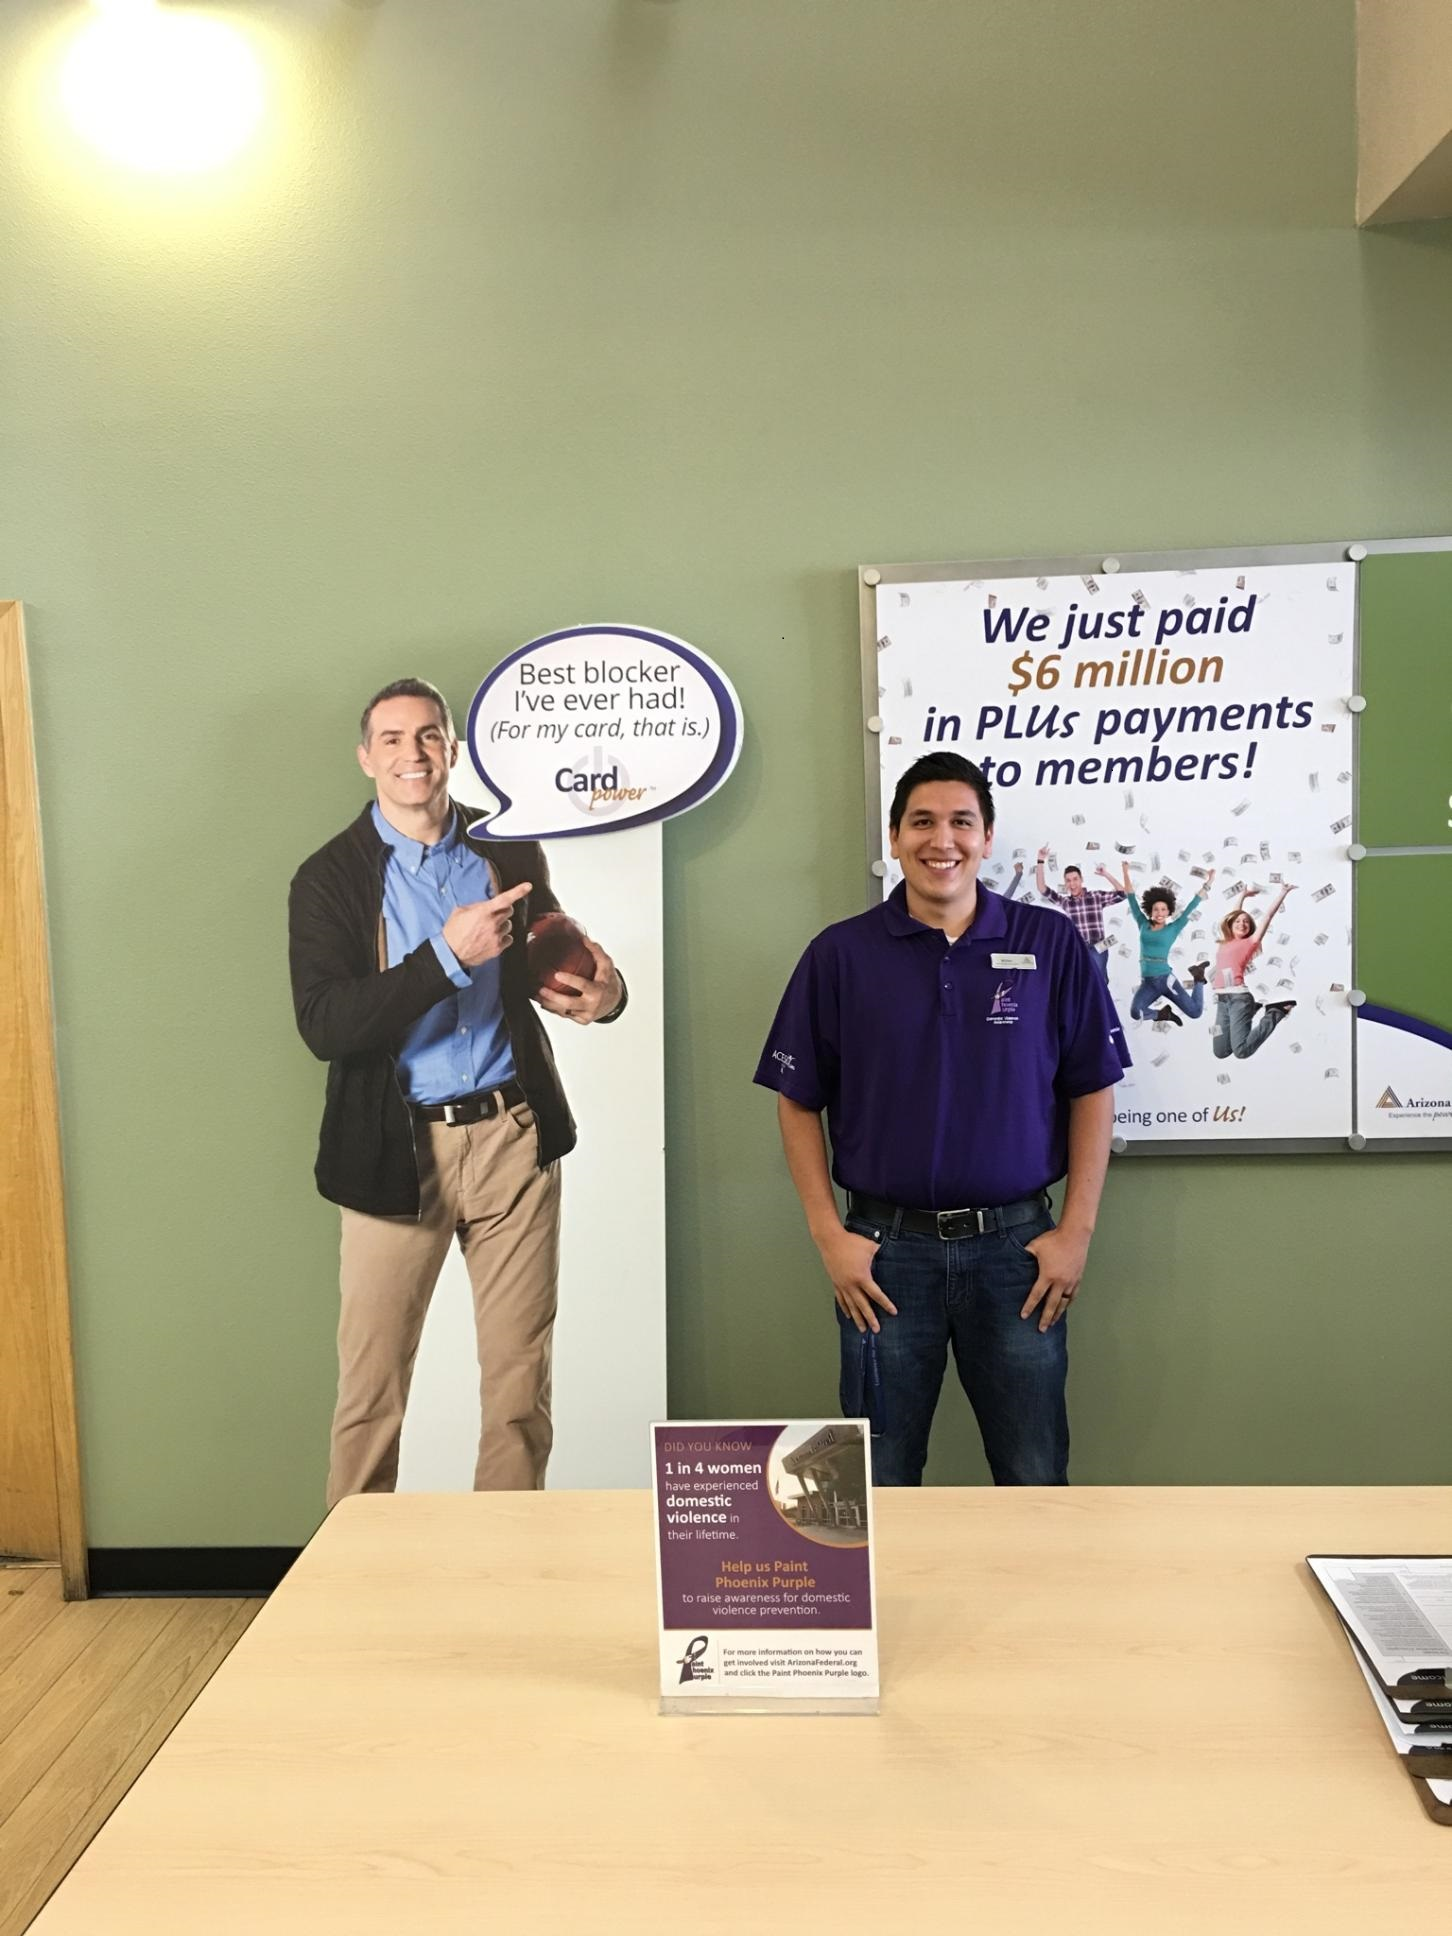 Arizona Federal Credit Union #PaintsPHXPurple